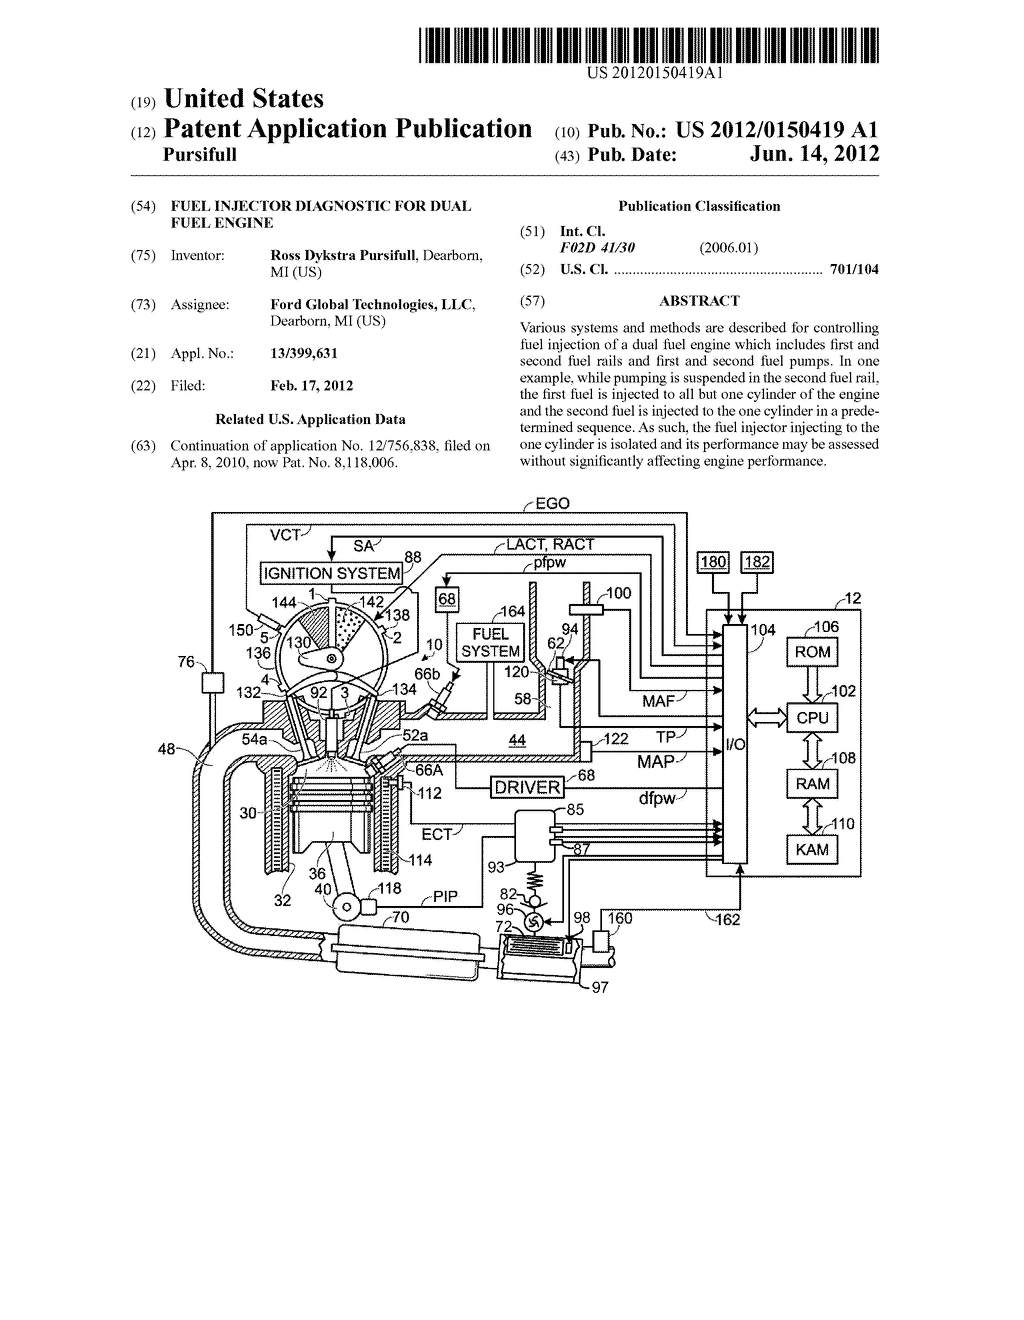 Fuel Injector Diagnostic For Dual Engine Diagram Schematic And Image 01